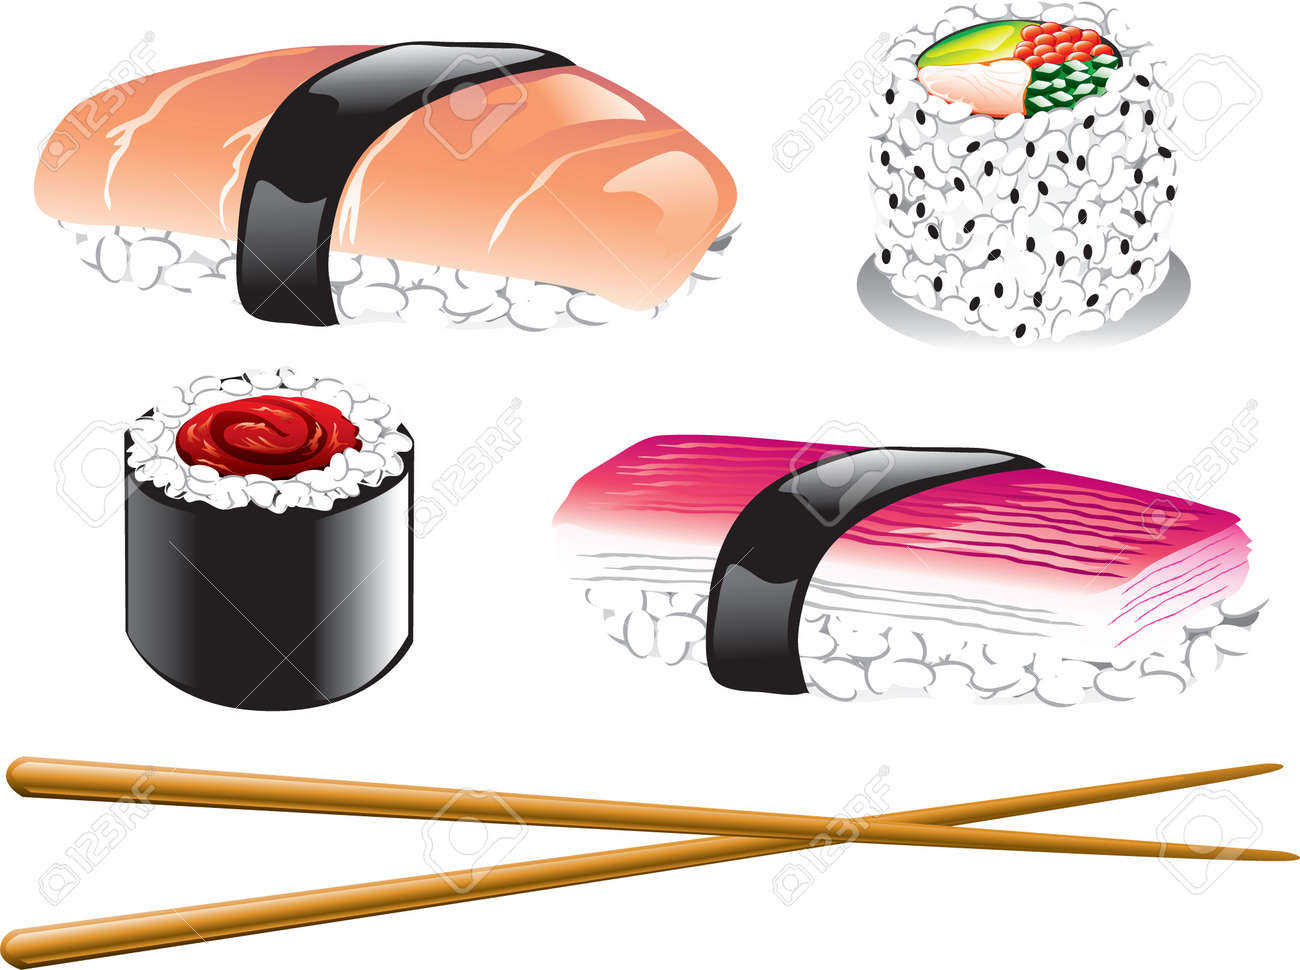 Illustration of different japanese food icons, including sushi, sashimi and chopsticks Stock Vector - 7771420